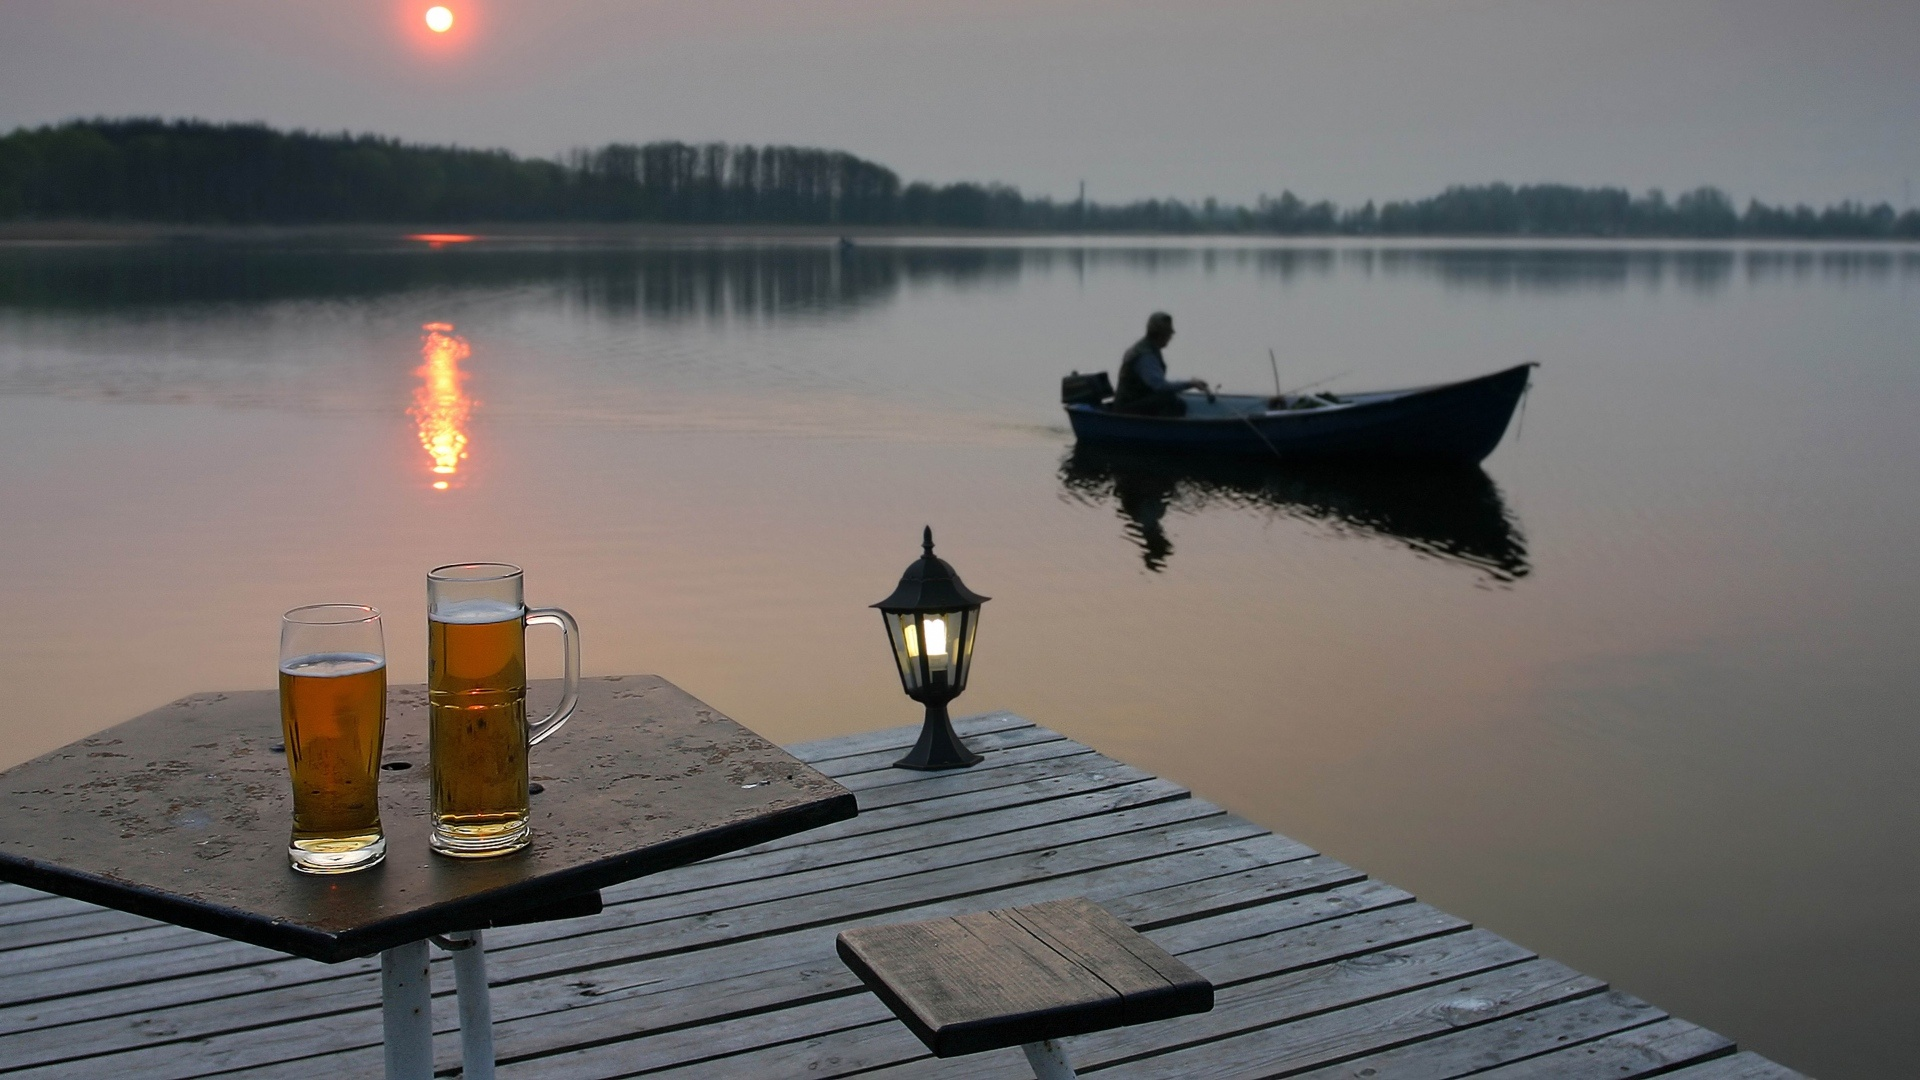 Two beer glasses on the table and a man in a boat against the sunset